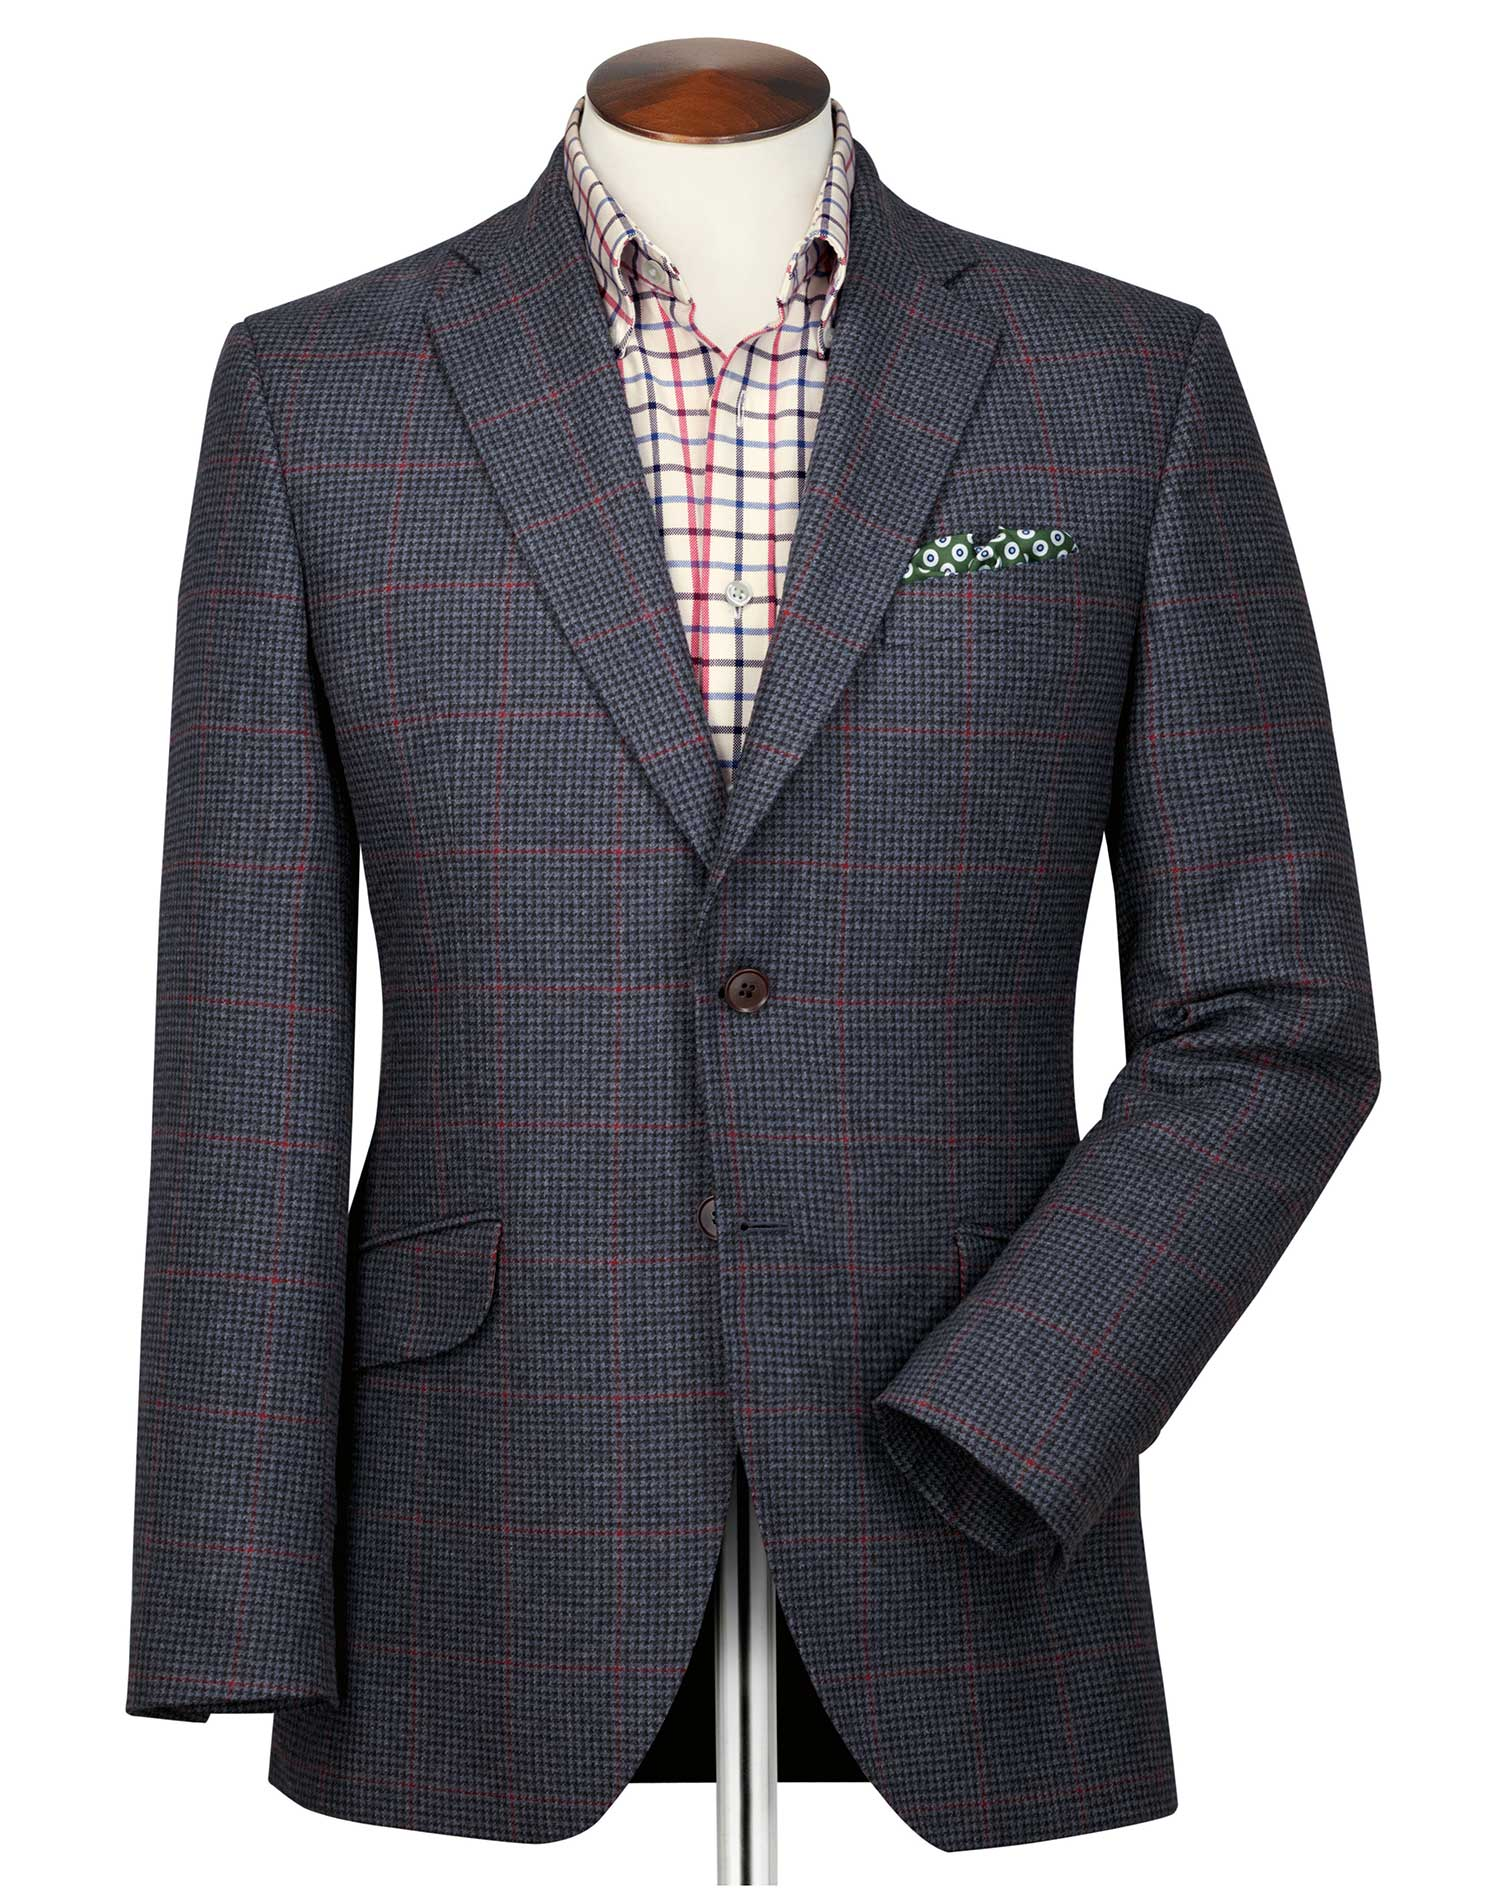 Classic Fit Navy and Pink Checkered British Tweed Jacket Size 40 Long by Charles Tyrwhitt